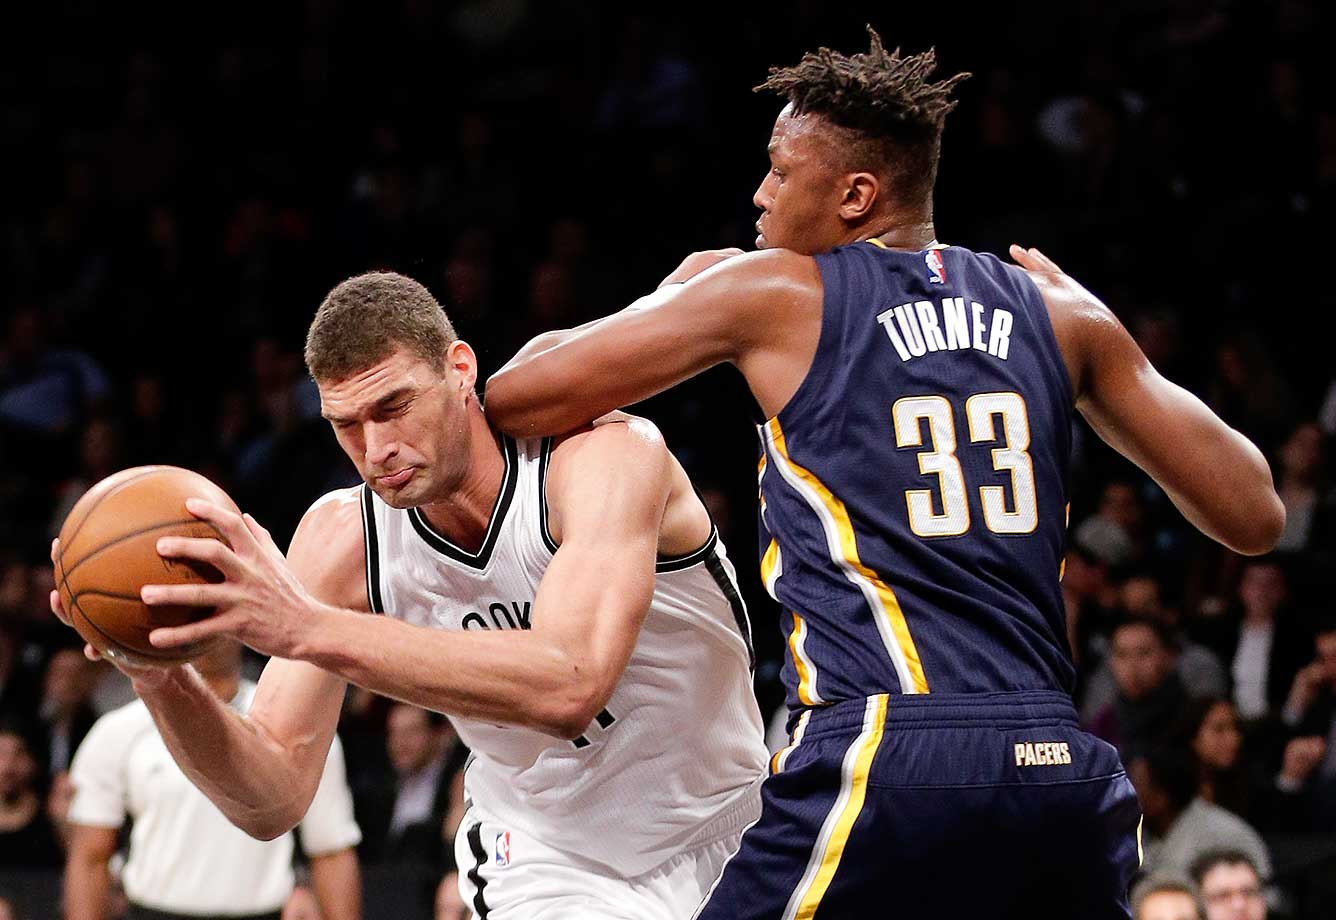 Brooklyn Nets center Brook Lopez makes a move around Indiana Pacers forward Myles Turner in New York.